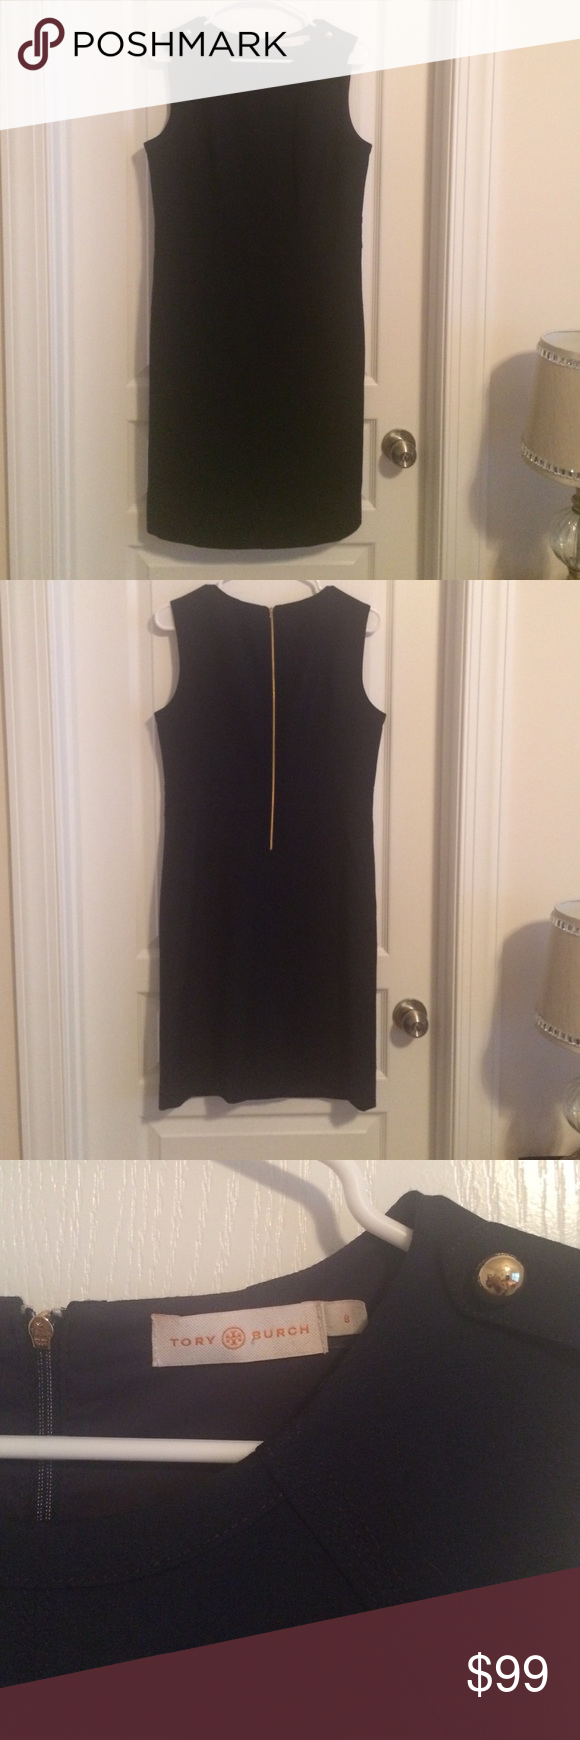 Classic Navy Tory Burch dress Classic Tory Burch dress with gold accents and back zipper. A favorite for your closet! Tory Burch Dresses